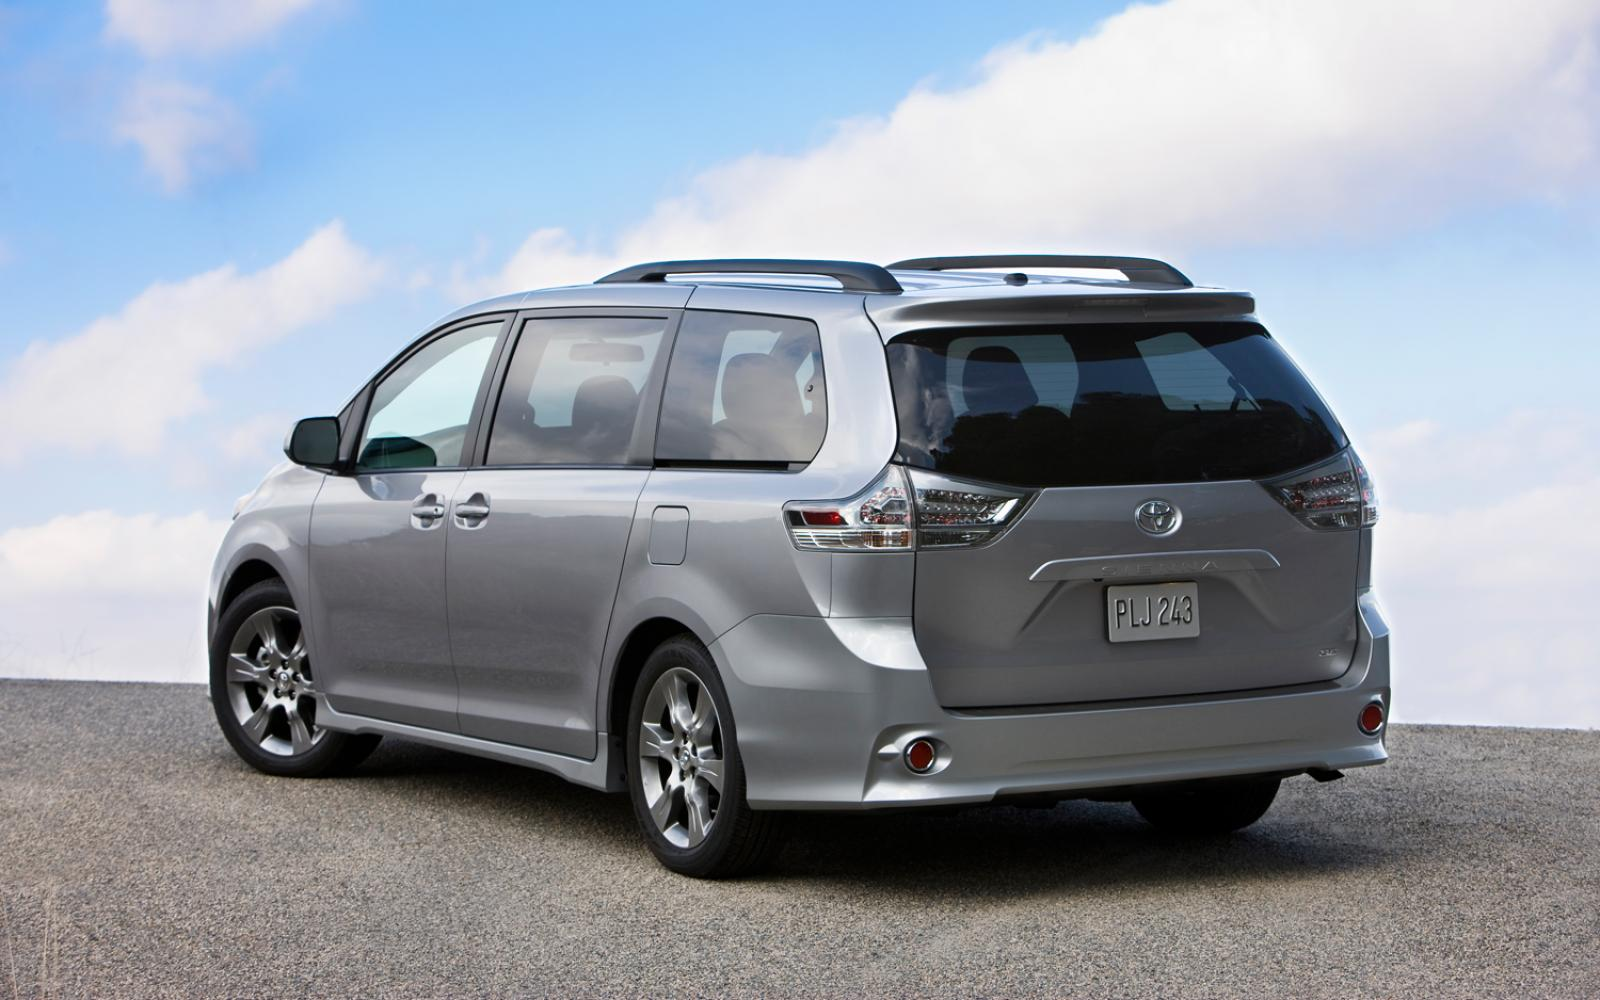 2012 toyota sienna information and photos zombiedrive. Black Bedroom Furniture Sets. Home Design Ideas